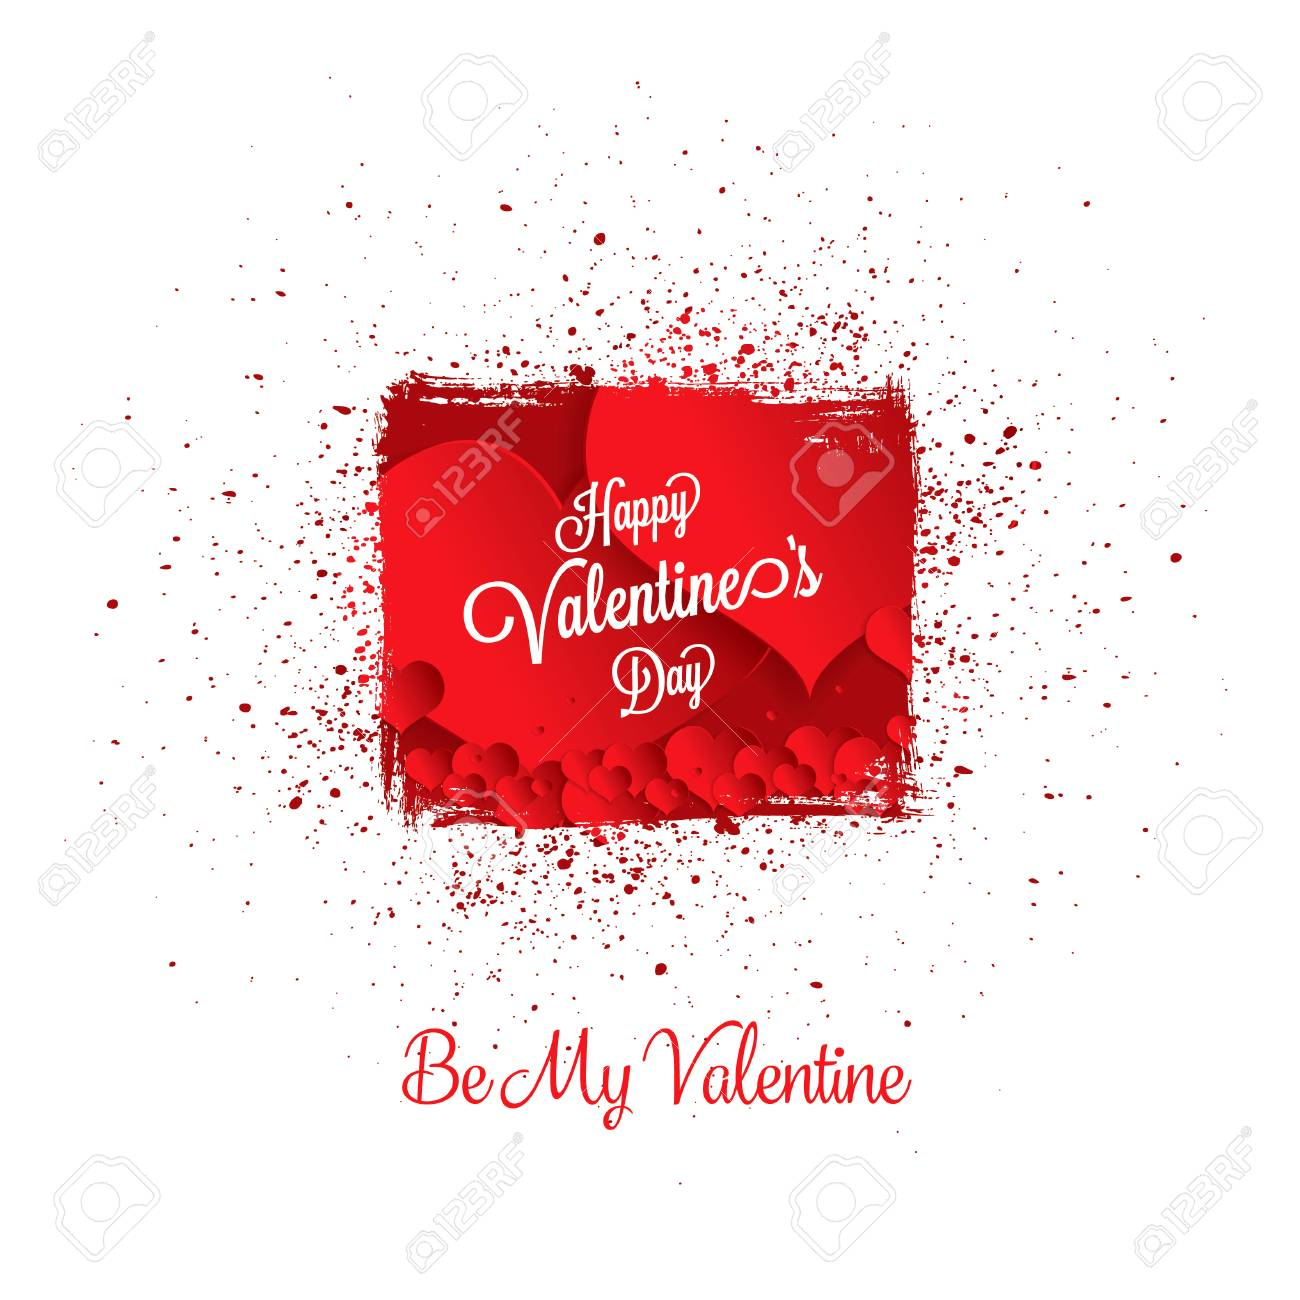 Valentines Greeting Card Happy Valentines Day Royalty Free